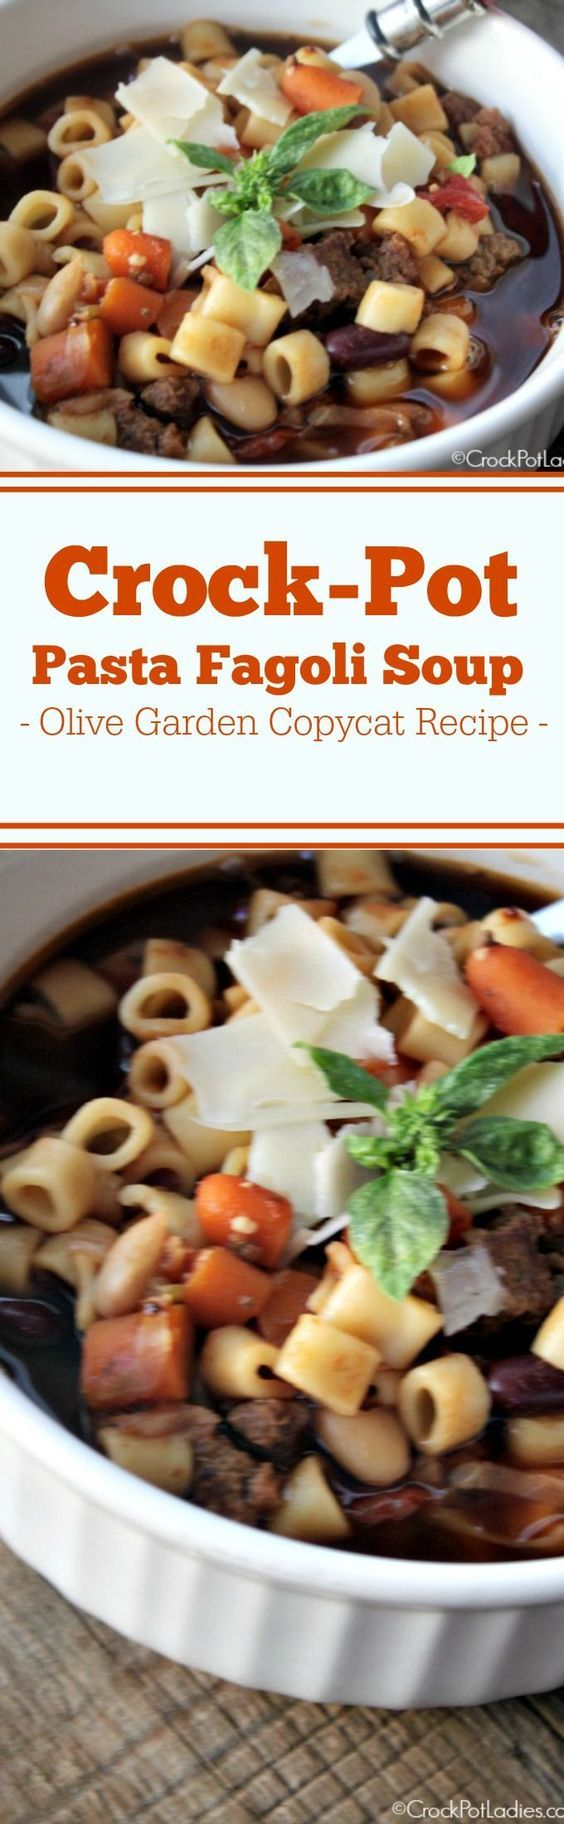 Crock-Pot Pasta Fagoli Soup (Olive Garden Copycat Recipe) - If you love the Pasta Fagoli Soup at Olive Garden restaurants you are going to LOVE this copycat version that you can make in your slow cooker! This recipe for Crock-Pot Pasta Fagoli Soup is warm